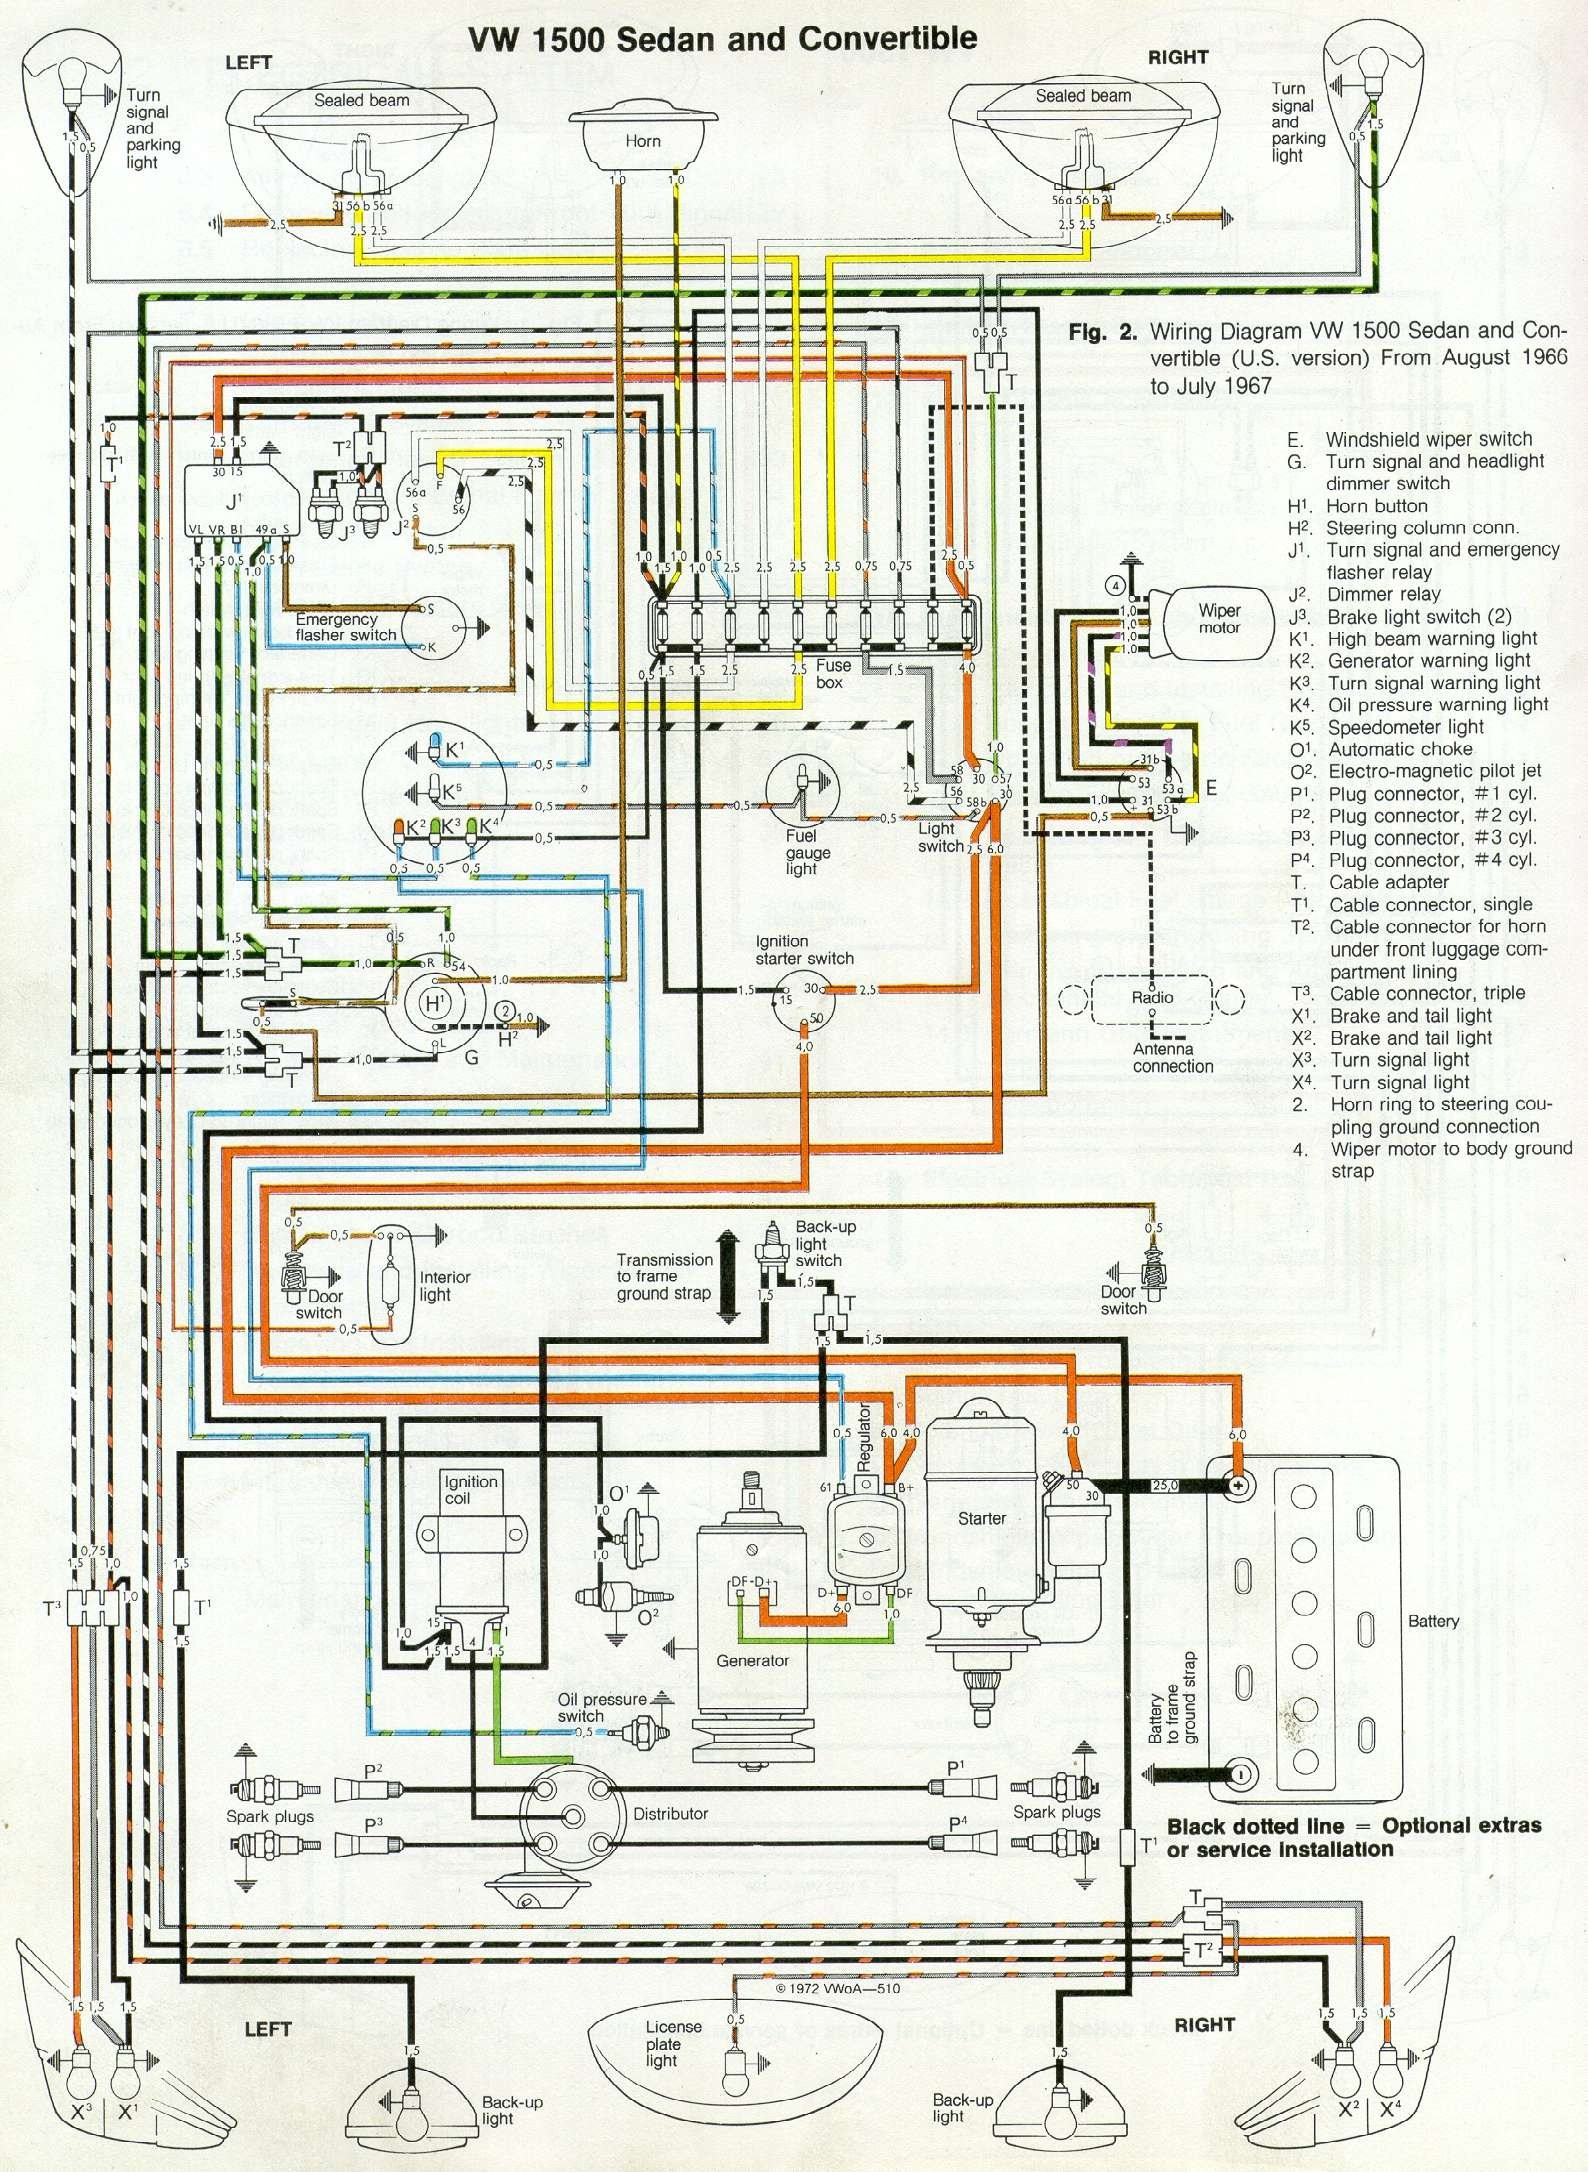 VW Beetle Wiring Digram 67 beetle wiring diagram u s version 1967 vw beetle vw bug wiring diagram at n-0.co